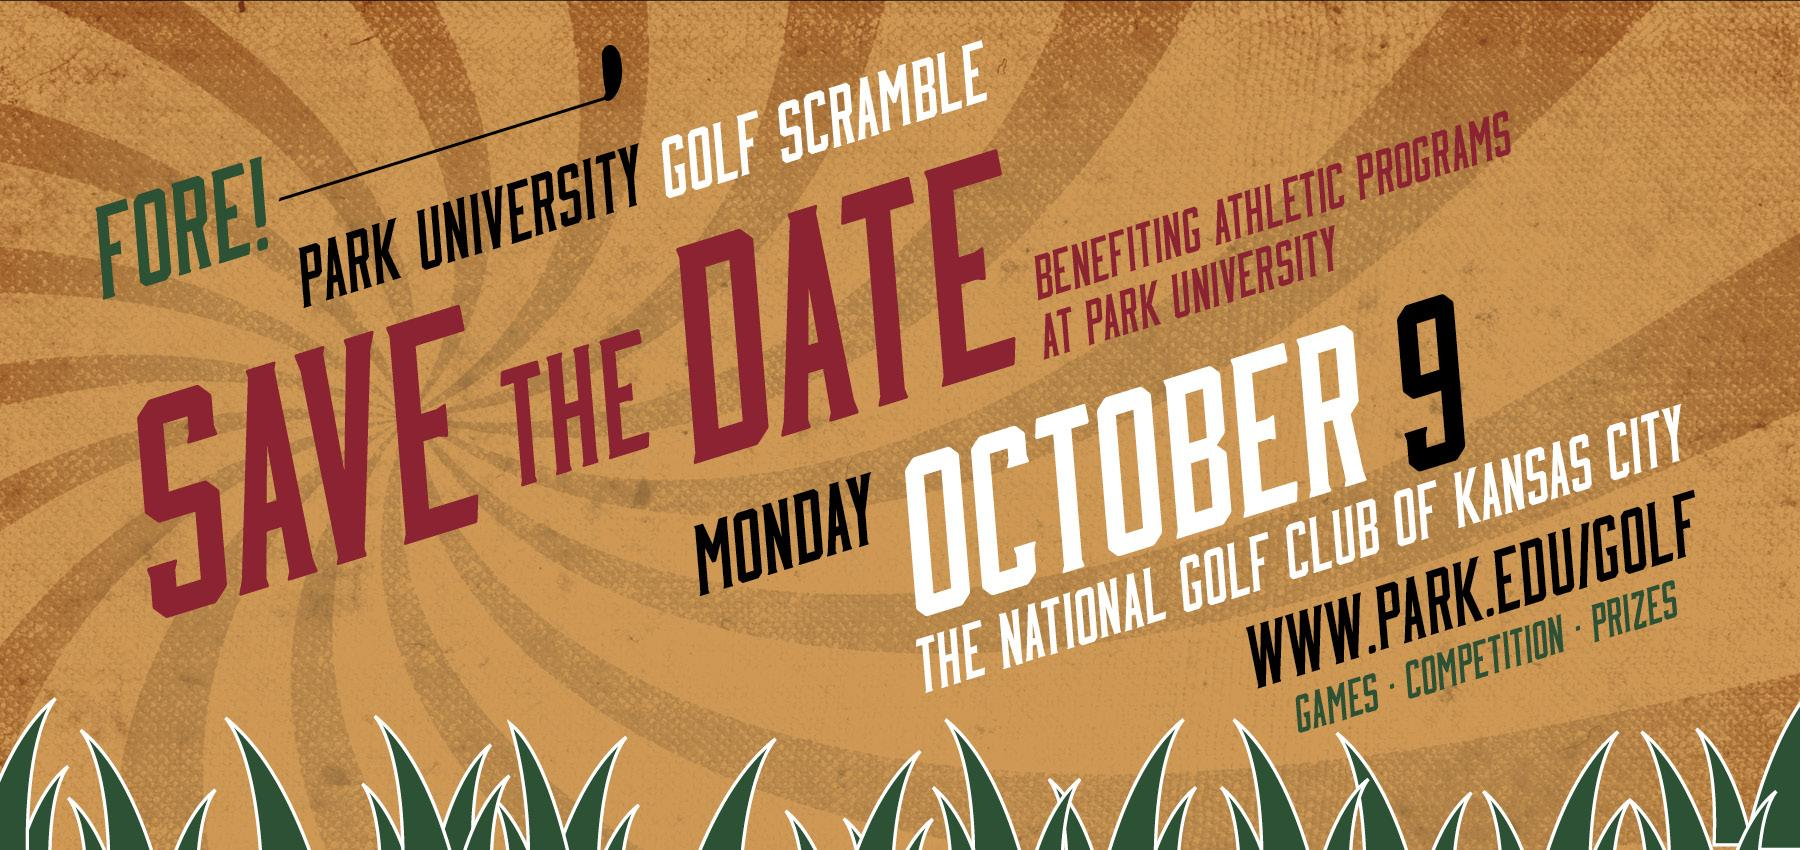 Sign up for the Park University Golf Scramble Today!